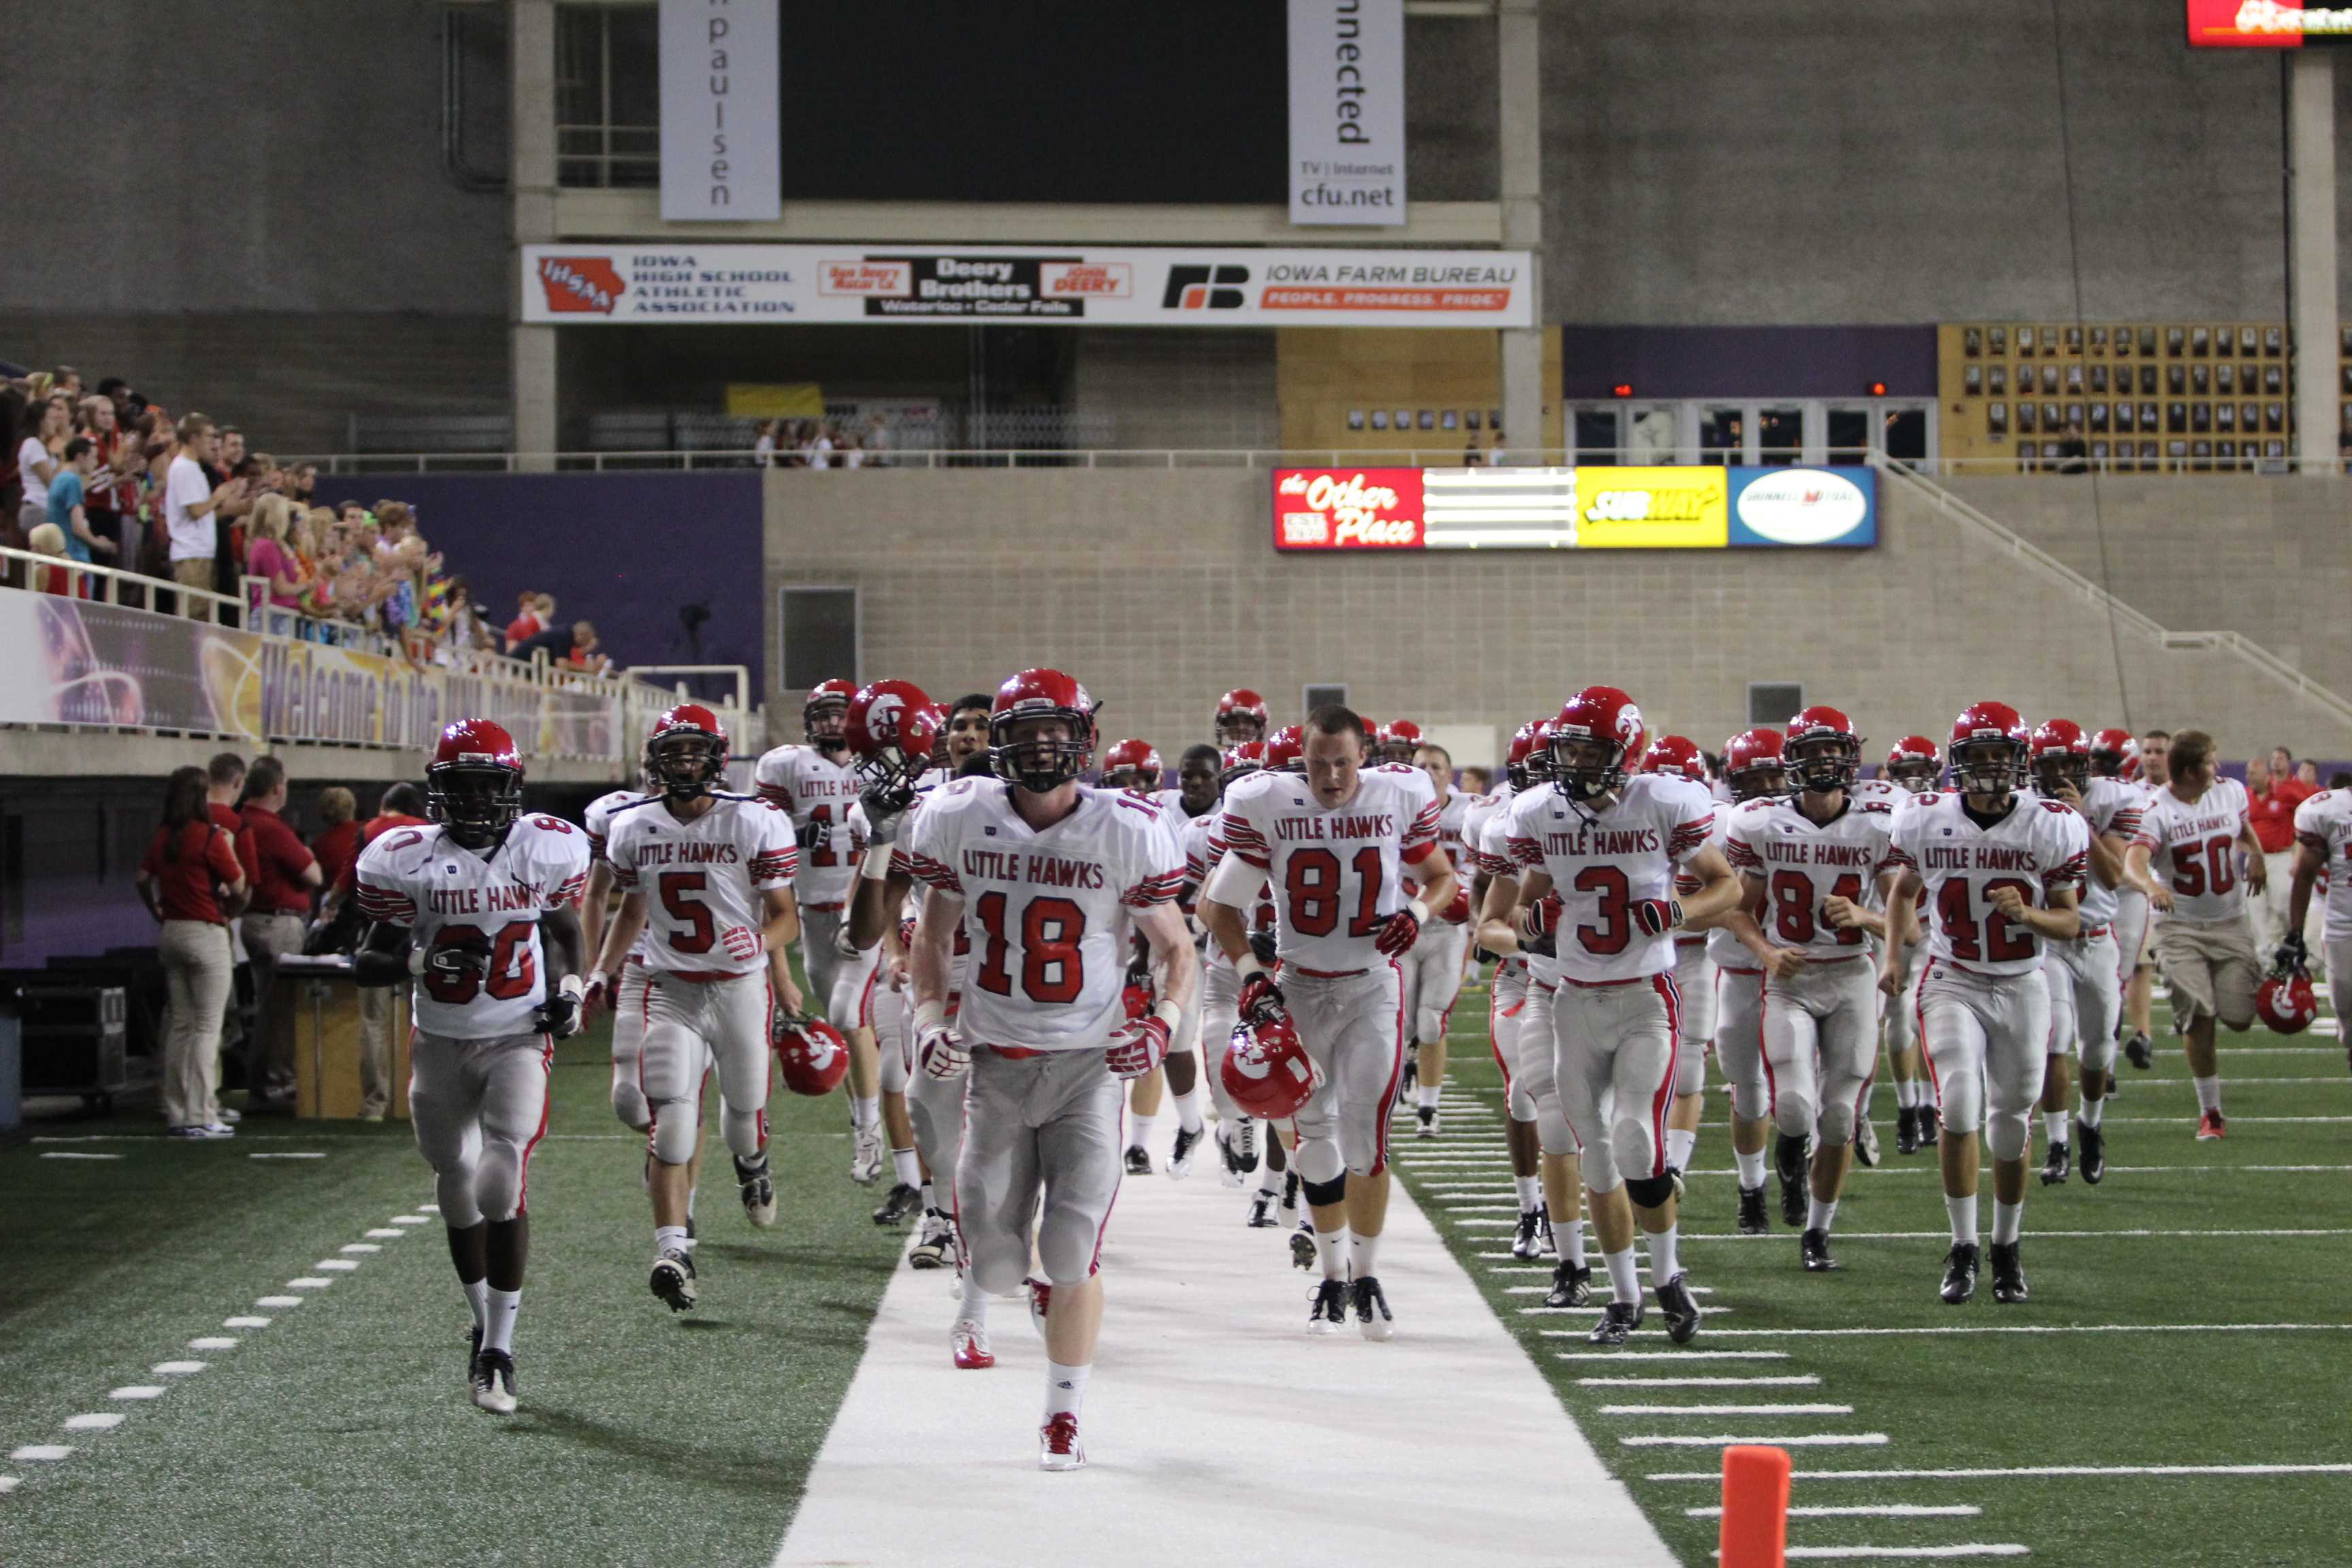 The Little Hawks jog off the field at the UNI Dome